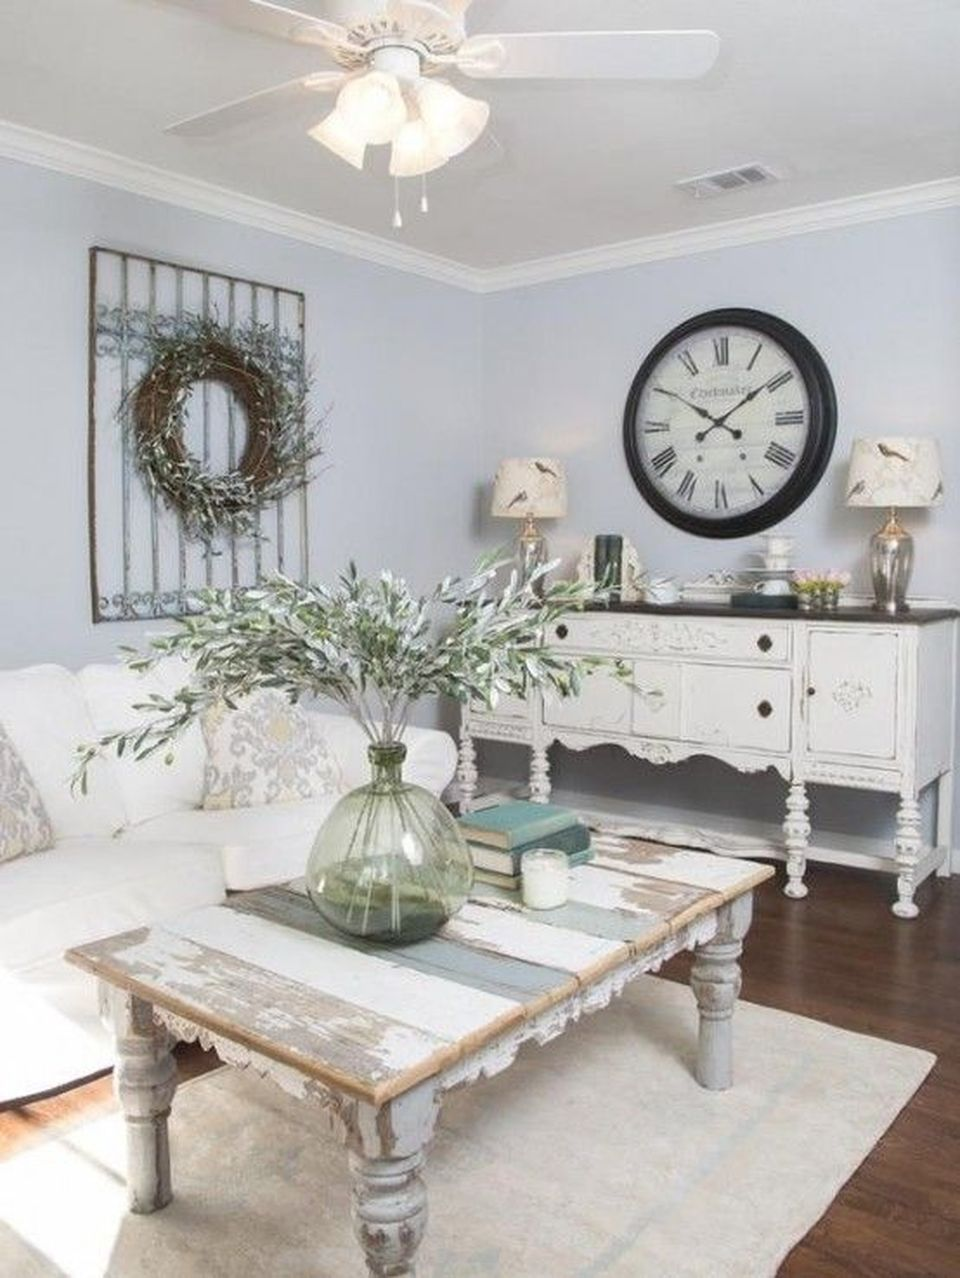 70 Vintage Shabby Chic Living Room Decorations Ideas | Home ...